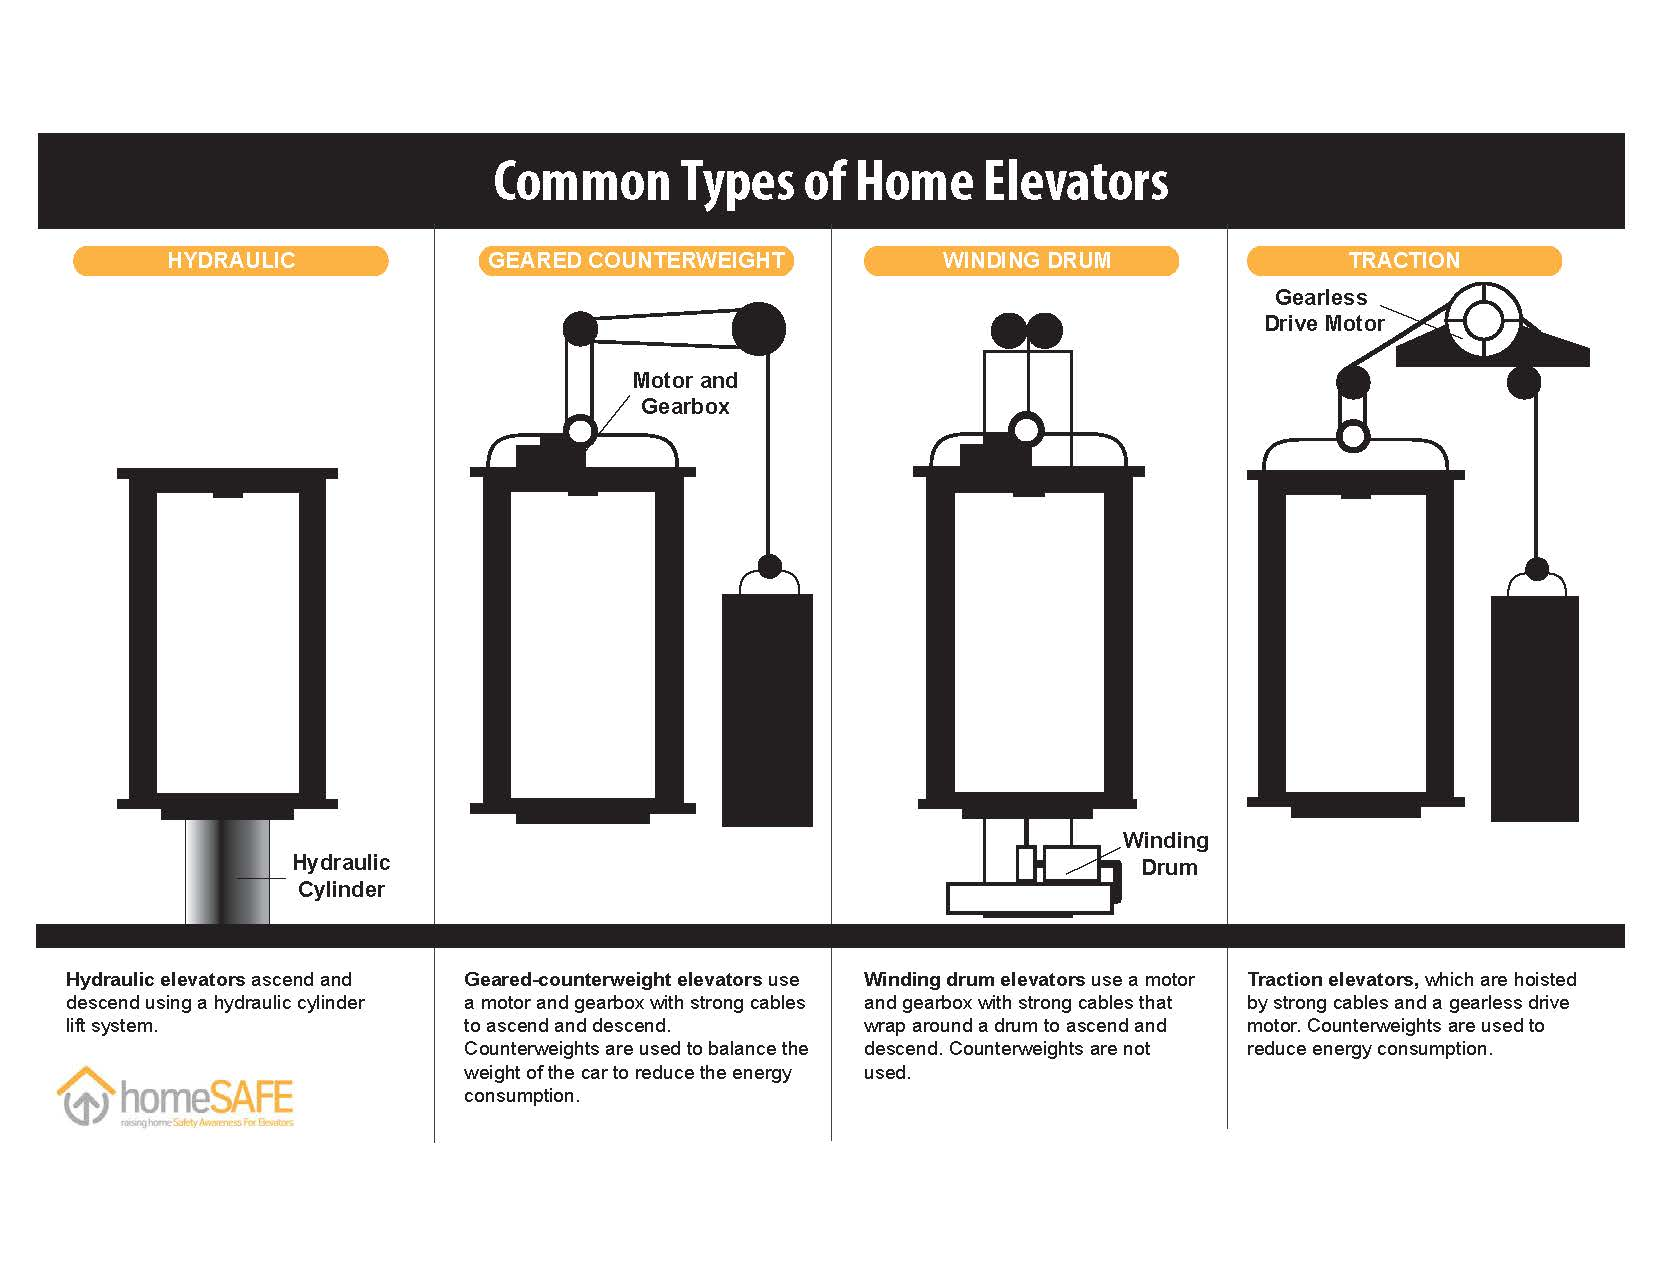 Network Wiring Closet Diagram Auto Electrical Water Installation